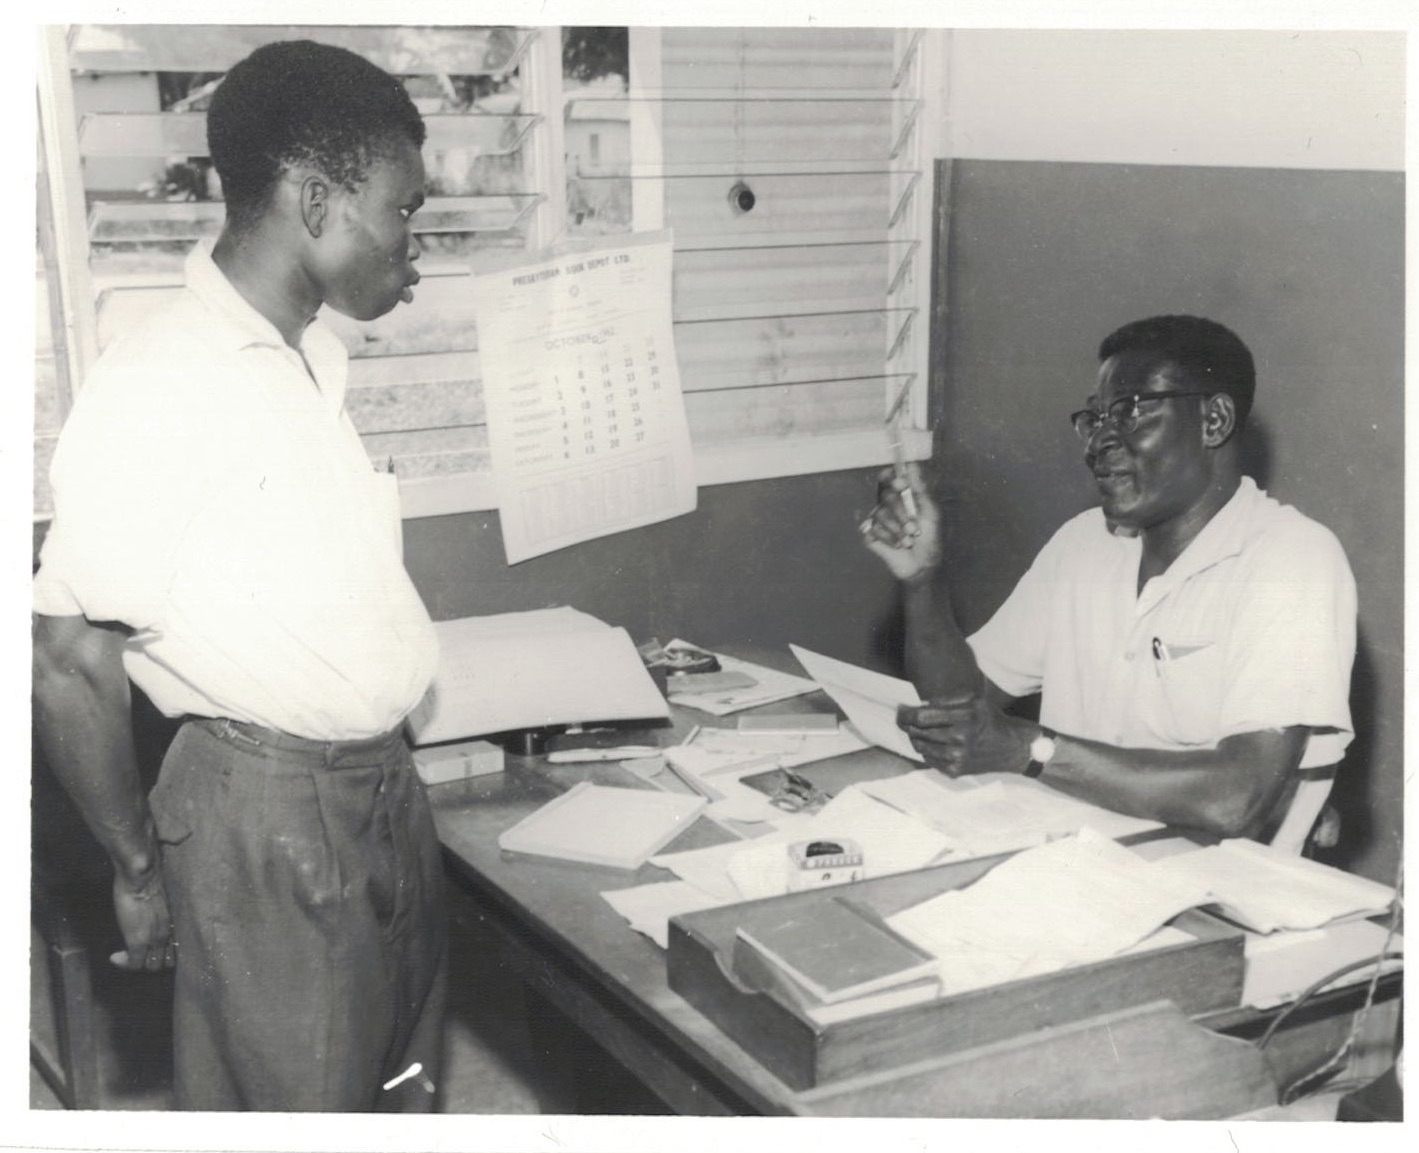 """An applicant answering questions from a Testing Officer after he has been tested on the Trunk Road."" Source: R/R/3437/7 Photographic Section, Information Services Department, Ministry of Information, Accra, Ghana."